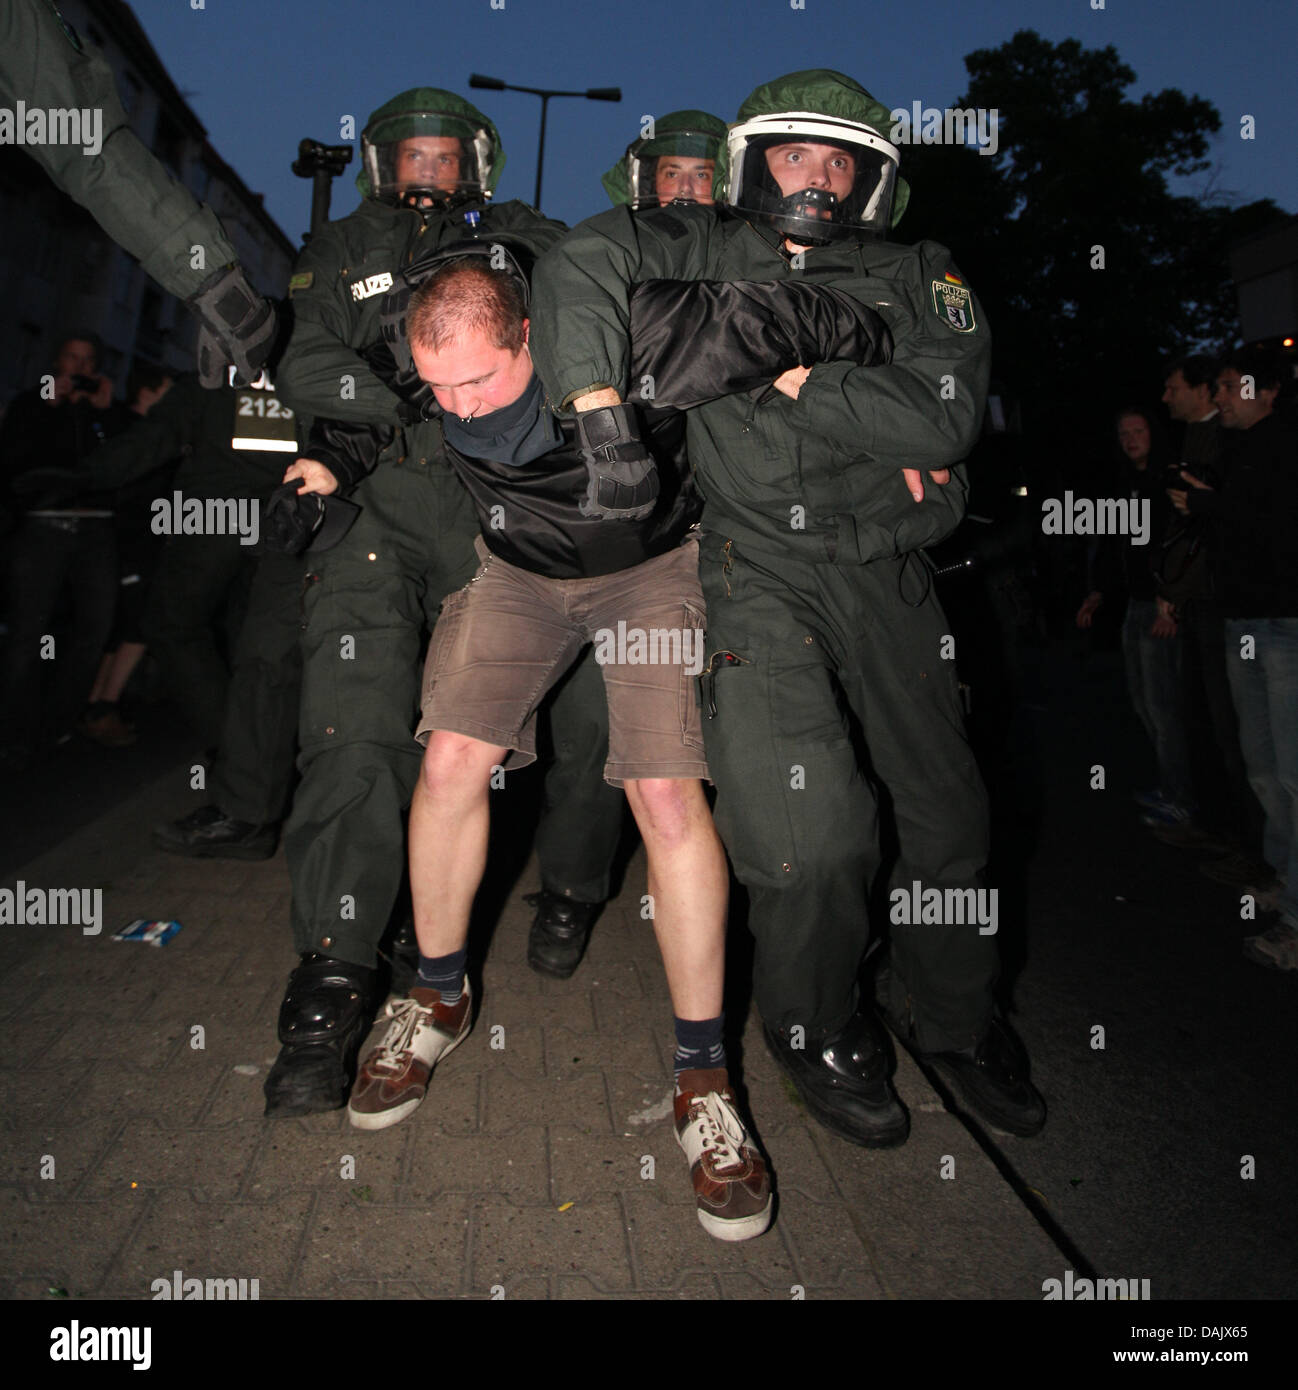 Police officers arrests a demonstrator in Berlin, Germany, 1 May 2011. Photo: Florian Schuh dpa/lbn - Stock Image